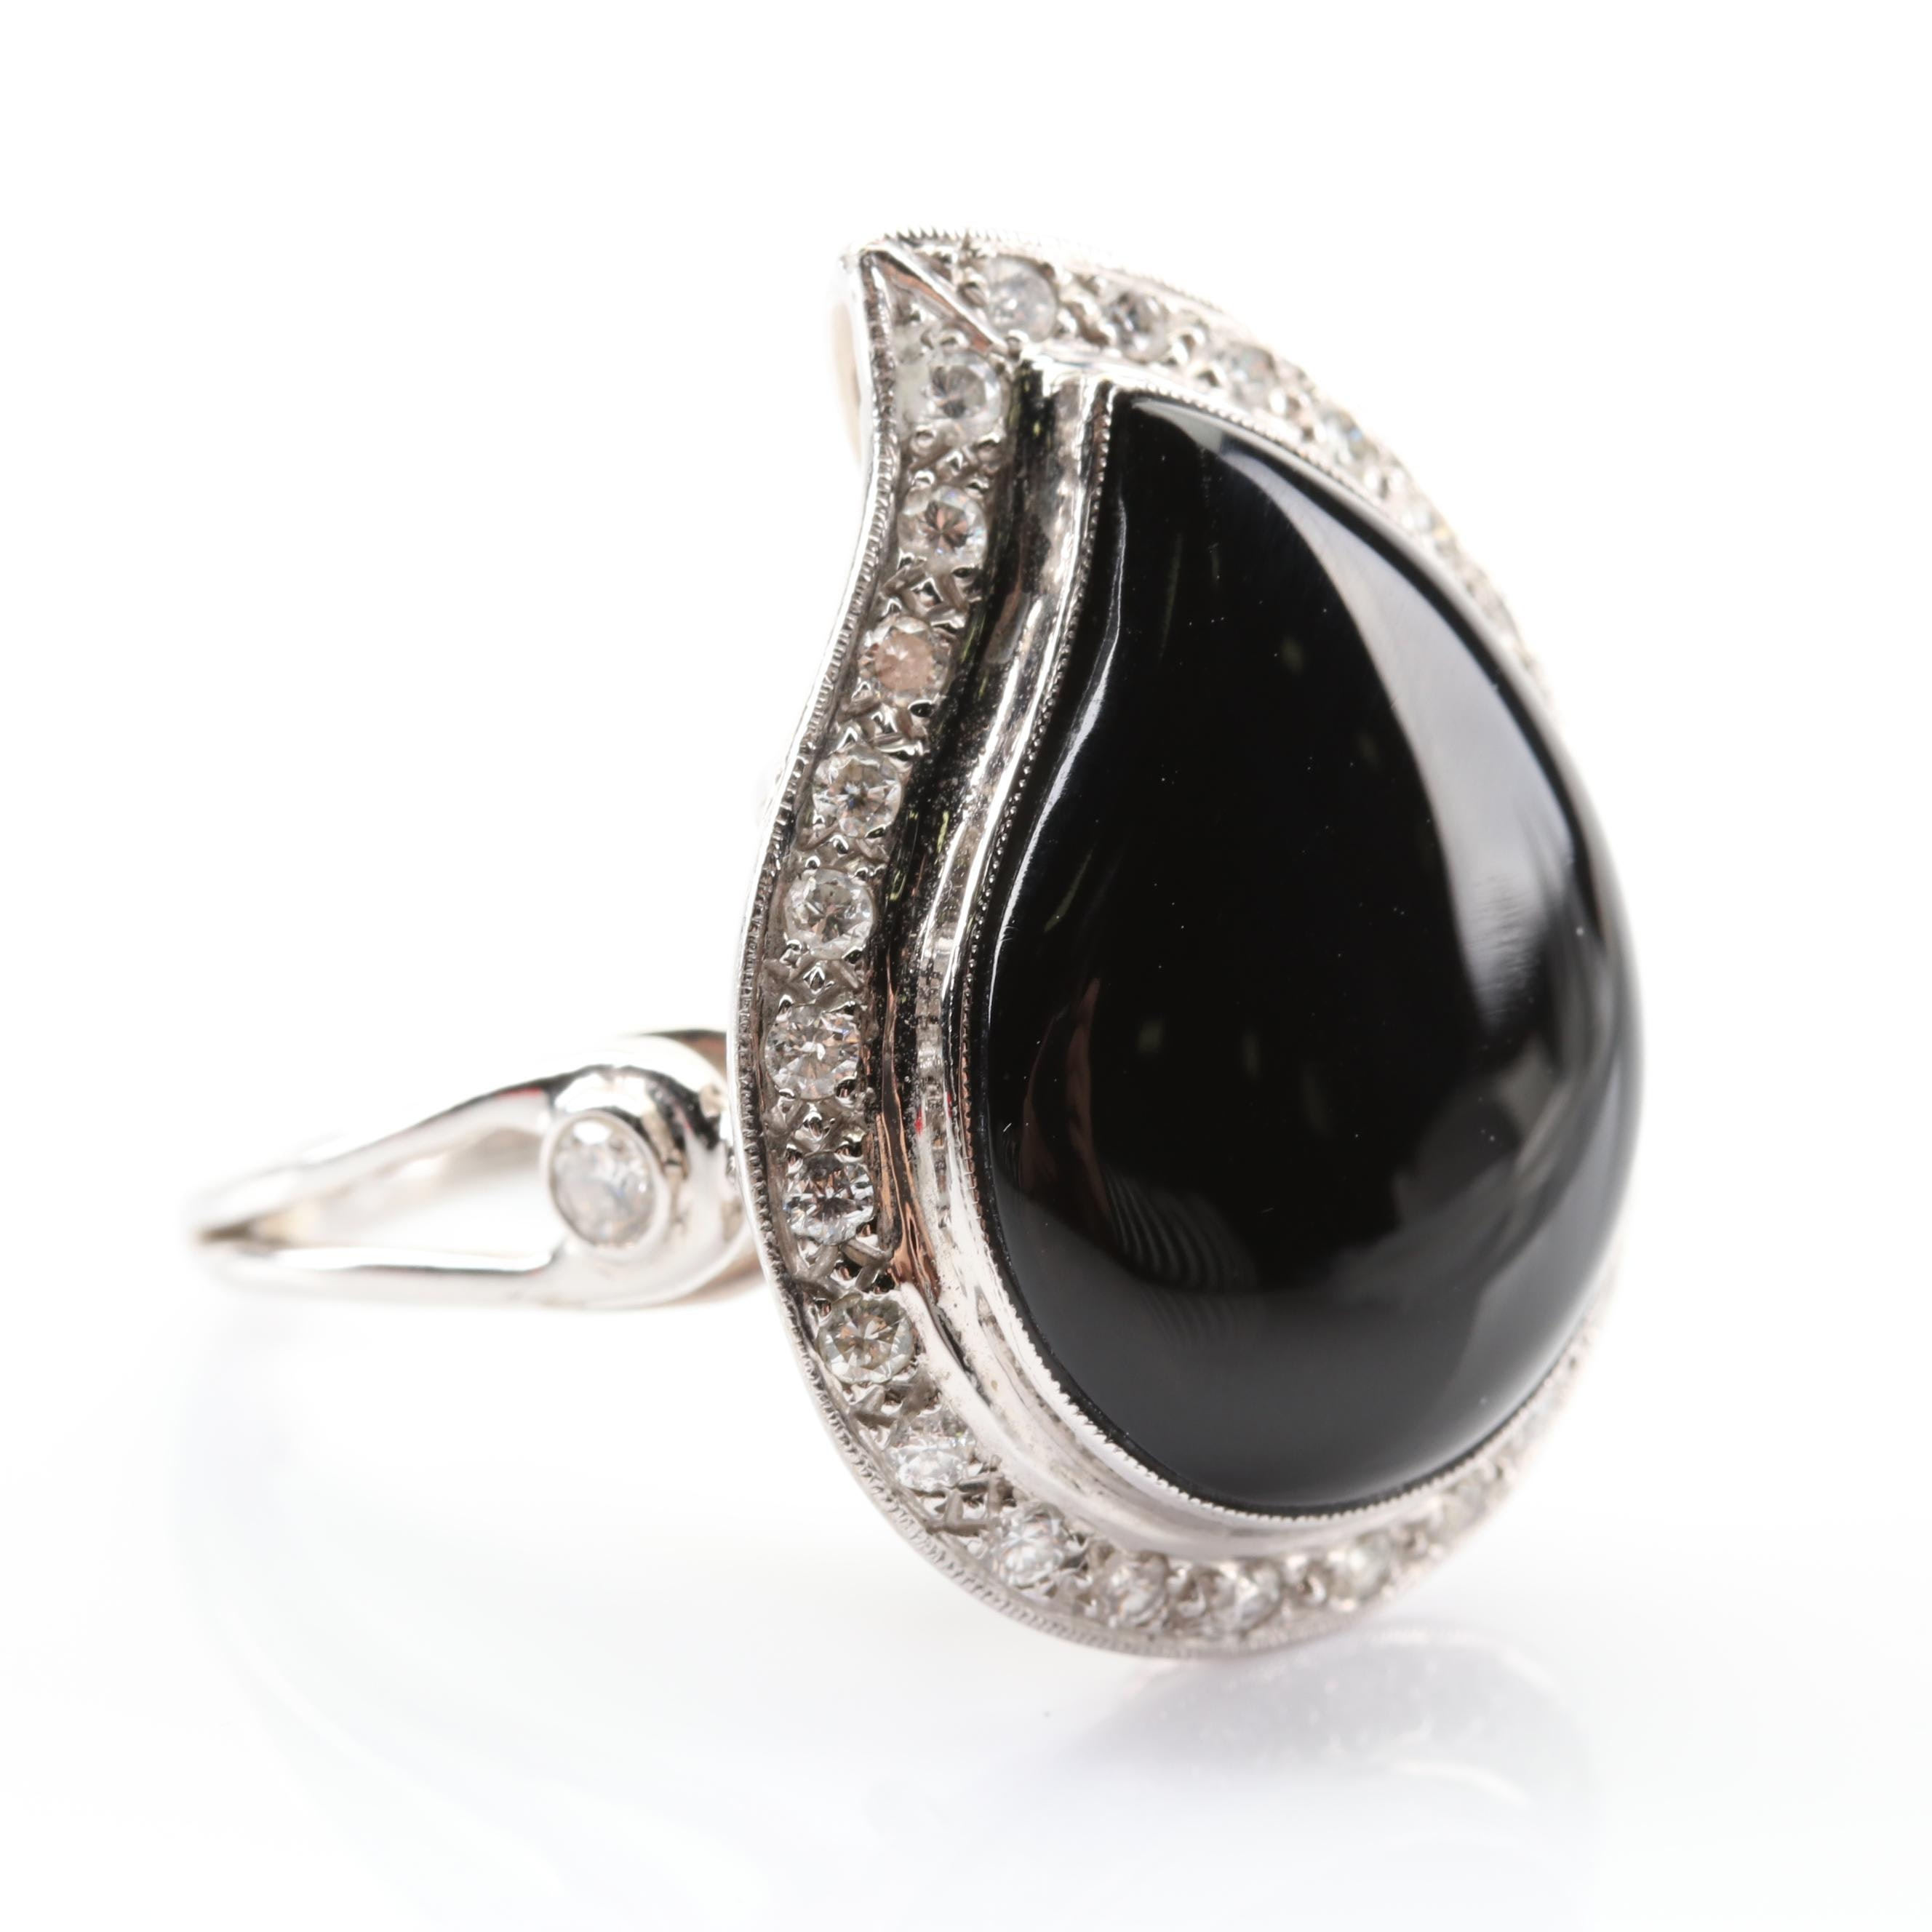 14K White Gold Black Onyx Ring with a Diamond Halo